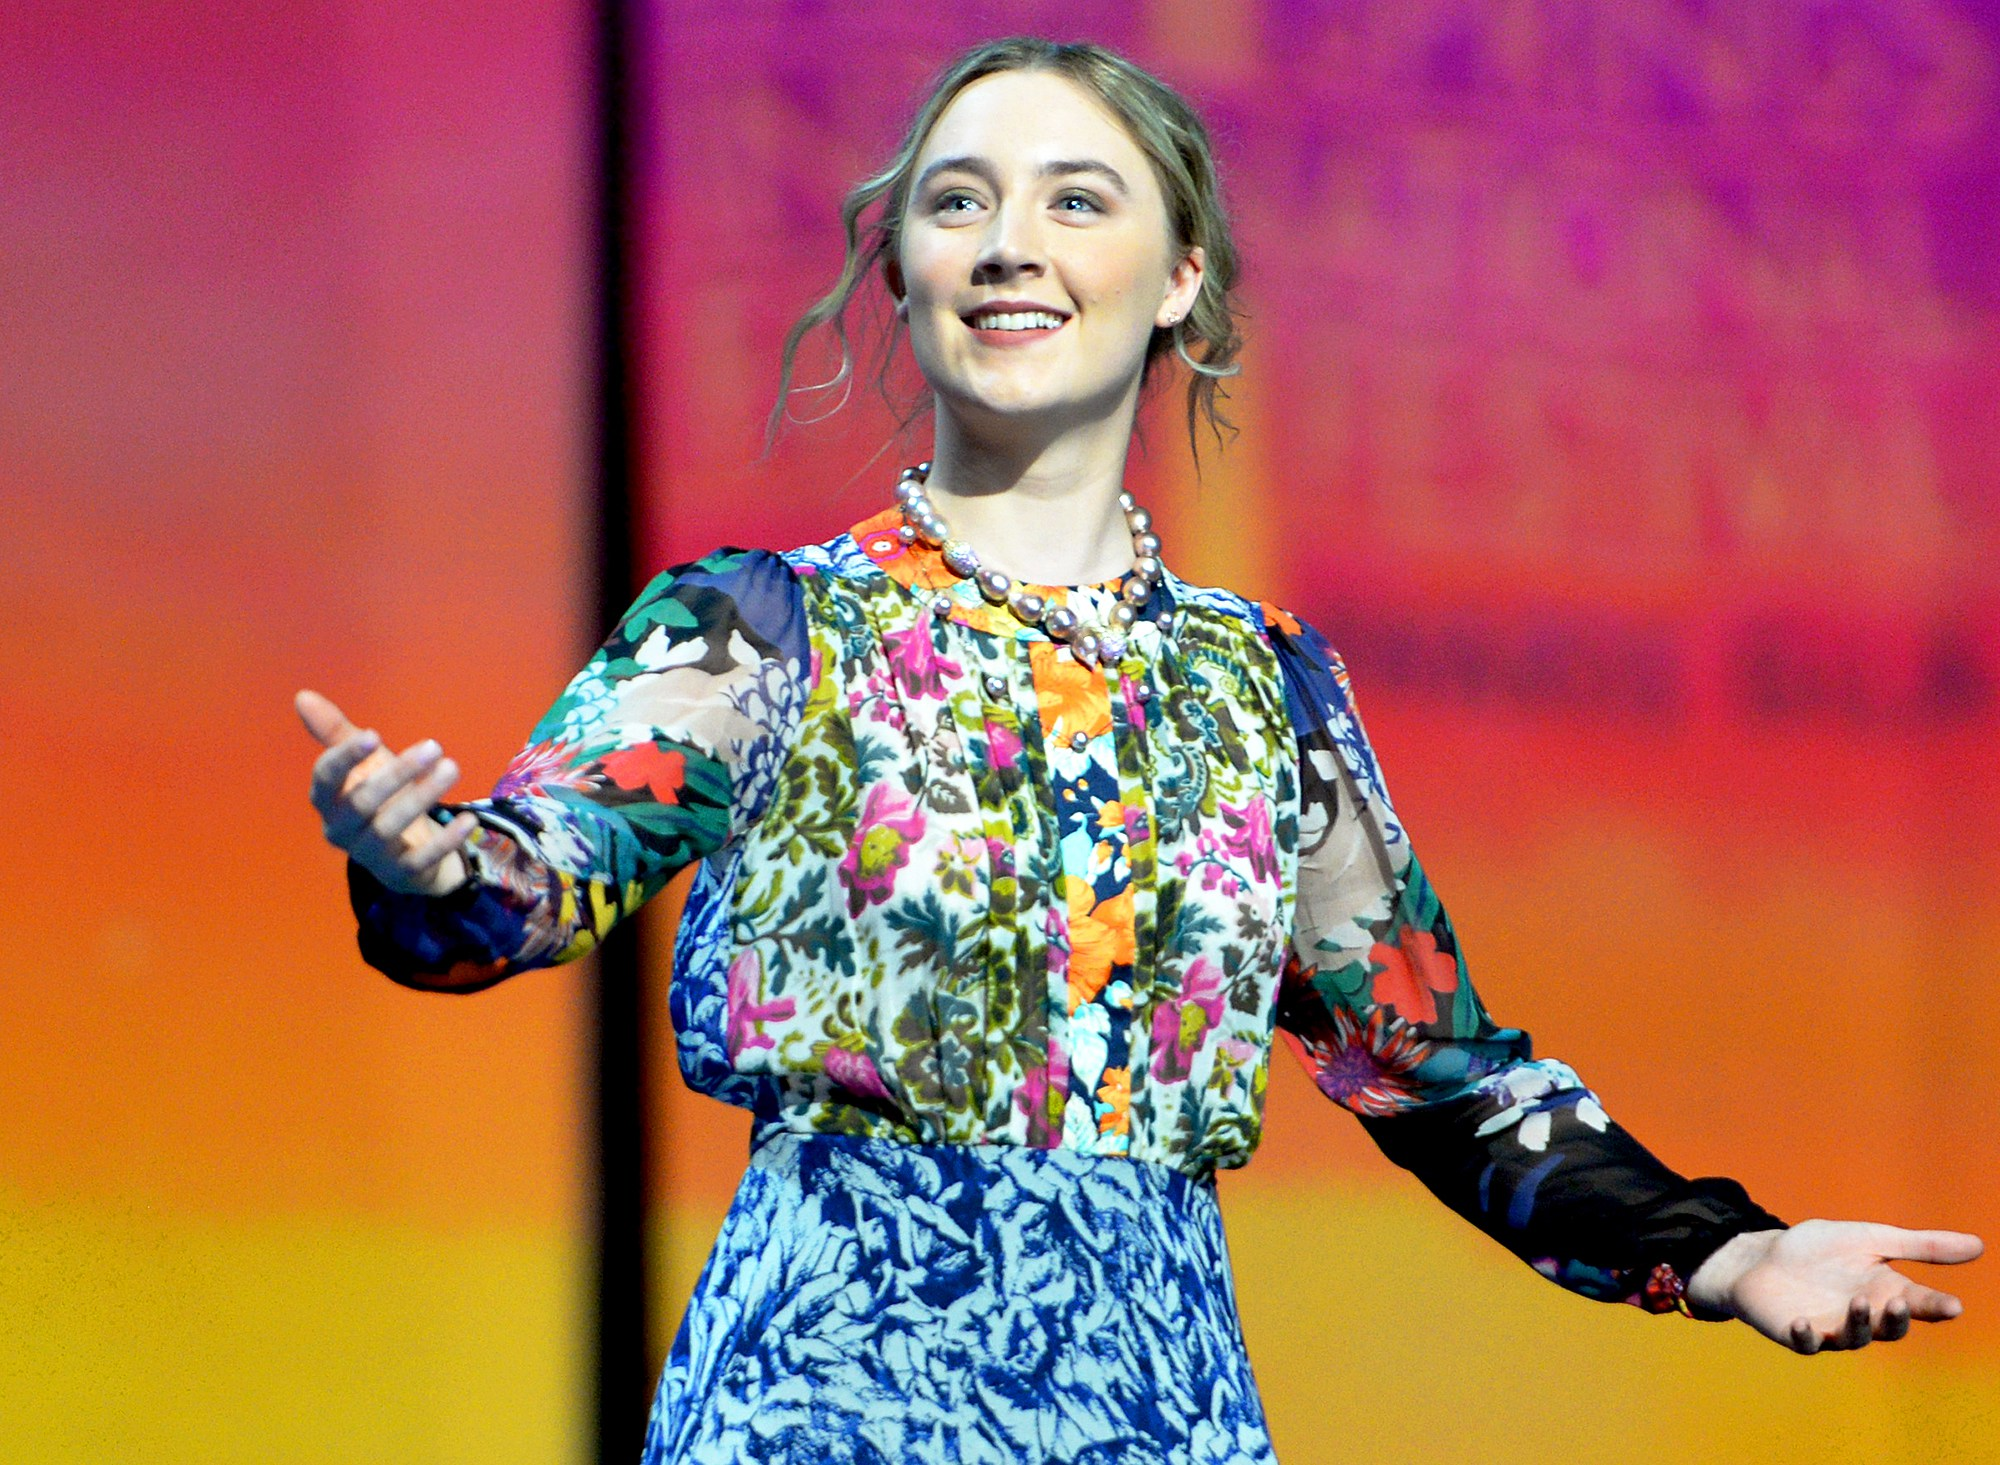 Saoirse Ronan accepts the International Star Award onstage at the 27th Annual Palm Springs International Film Festival Awards Gala in Palm Springs, California.